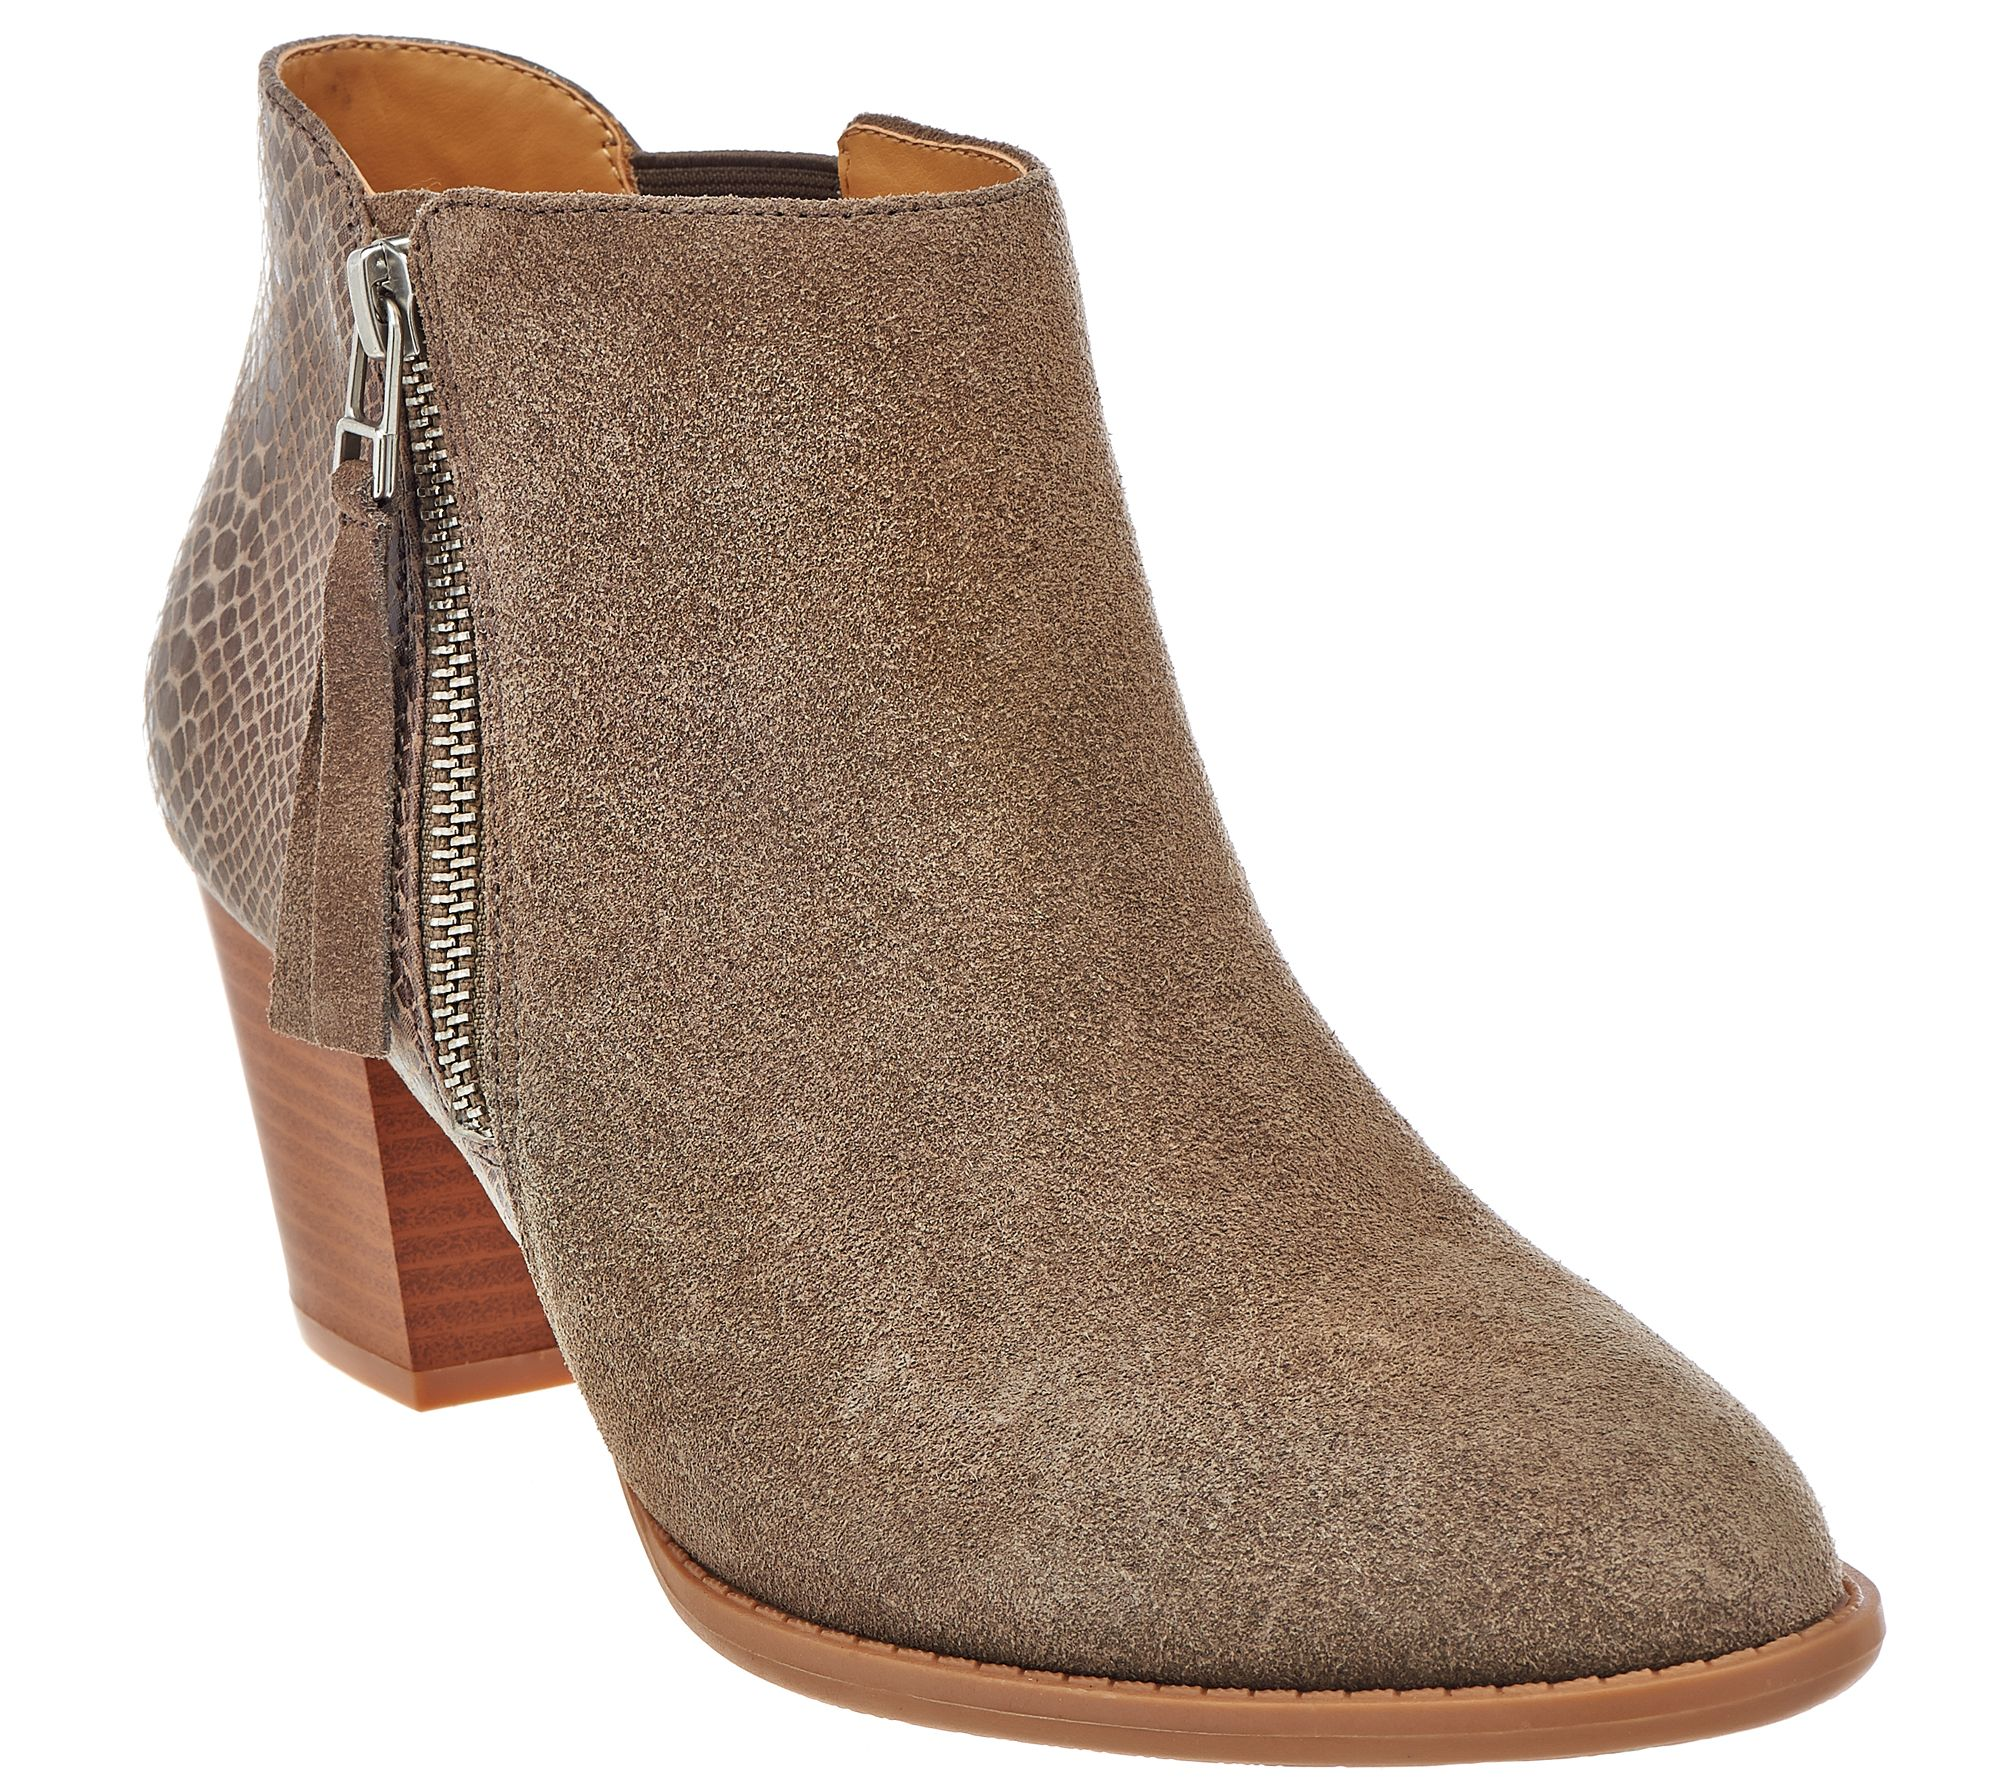 Free shipping on women's booties at bonjournal.tk Shop all types of ankle boots, chelsea boots, and short boots for women from the best brands including Steve Madden, Sam Edelman, Vince Camuto and more. Totally free shipping & returns.